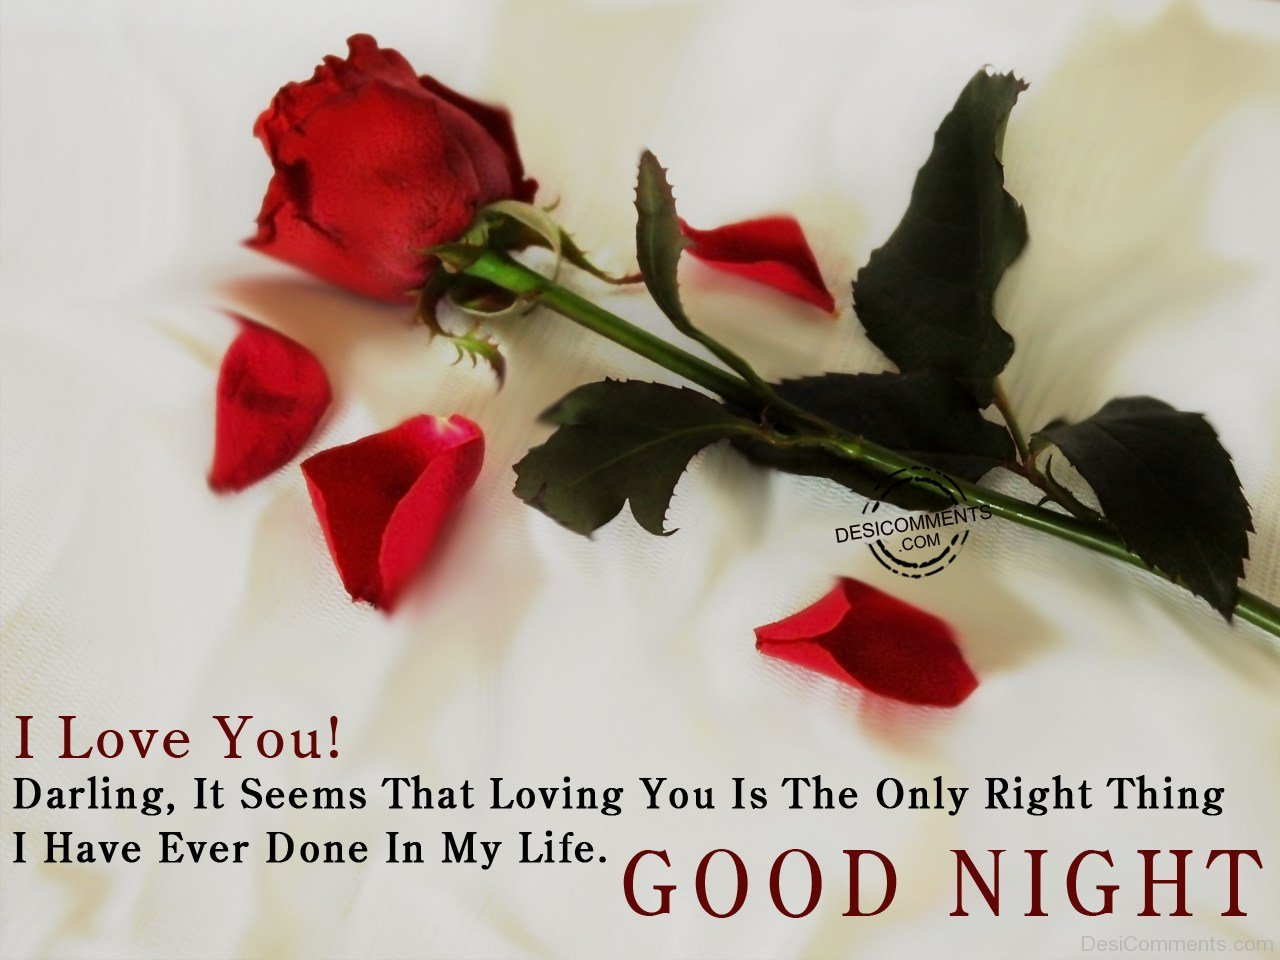 I Love You Good Night Desicommentscom